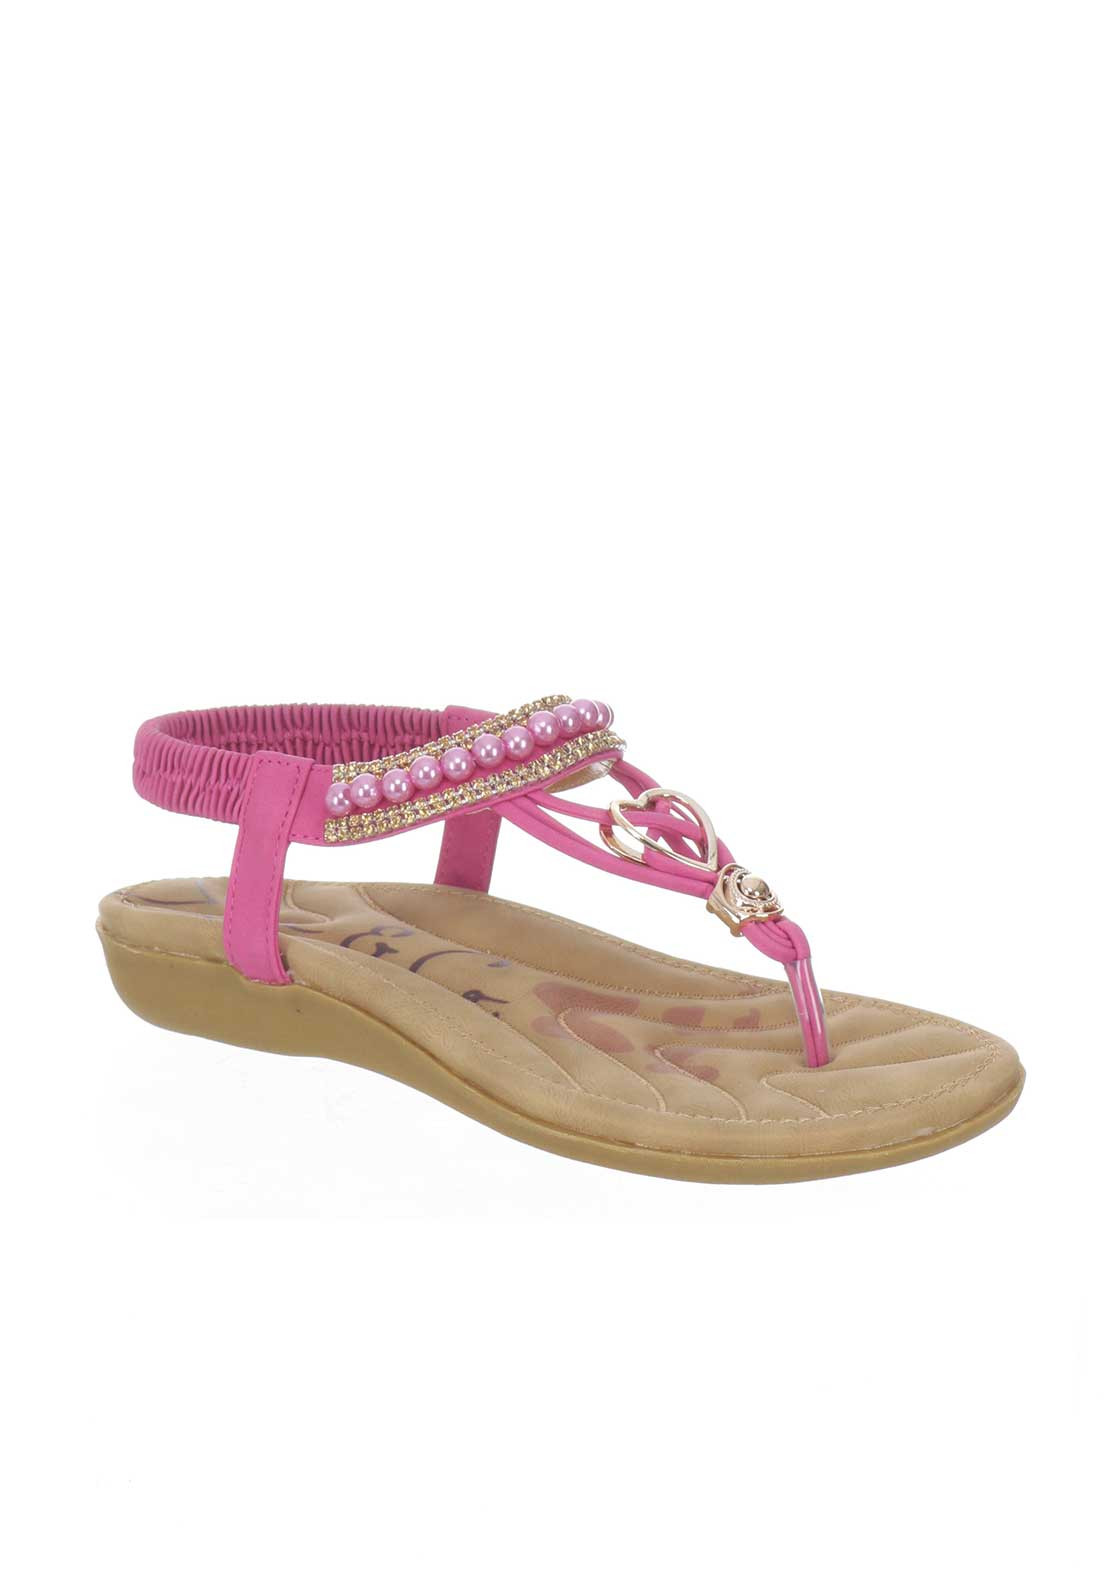 7c61cbad3364b1 Zanni   Co. Fair Lady Embellished Sandals